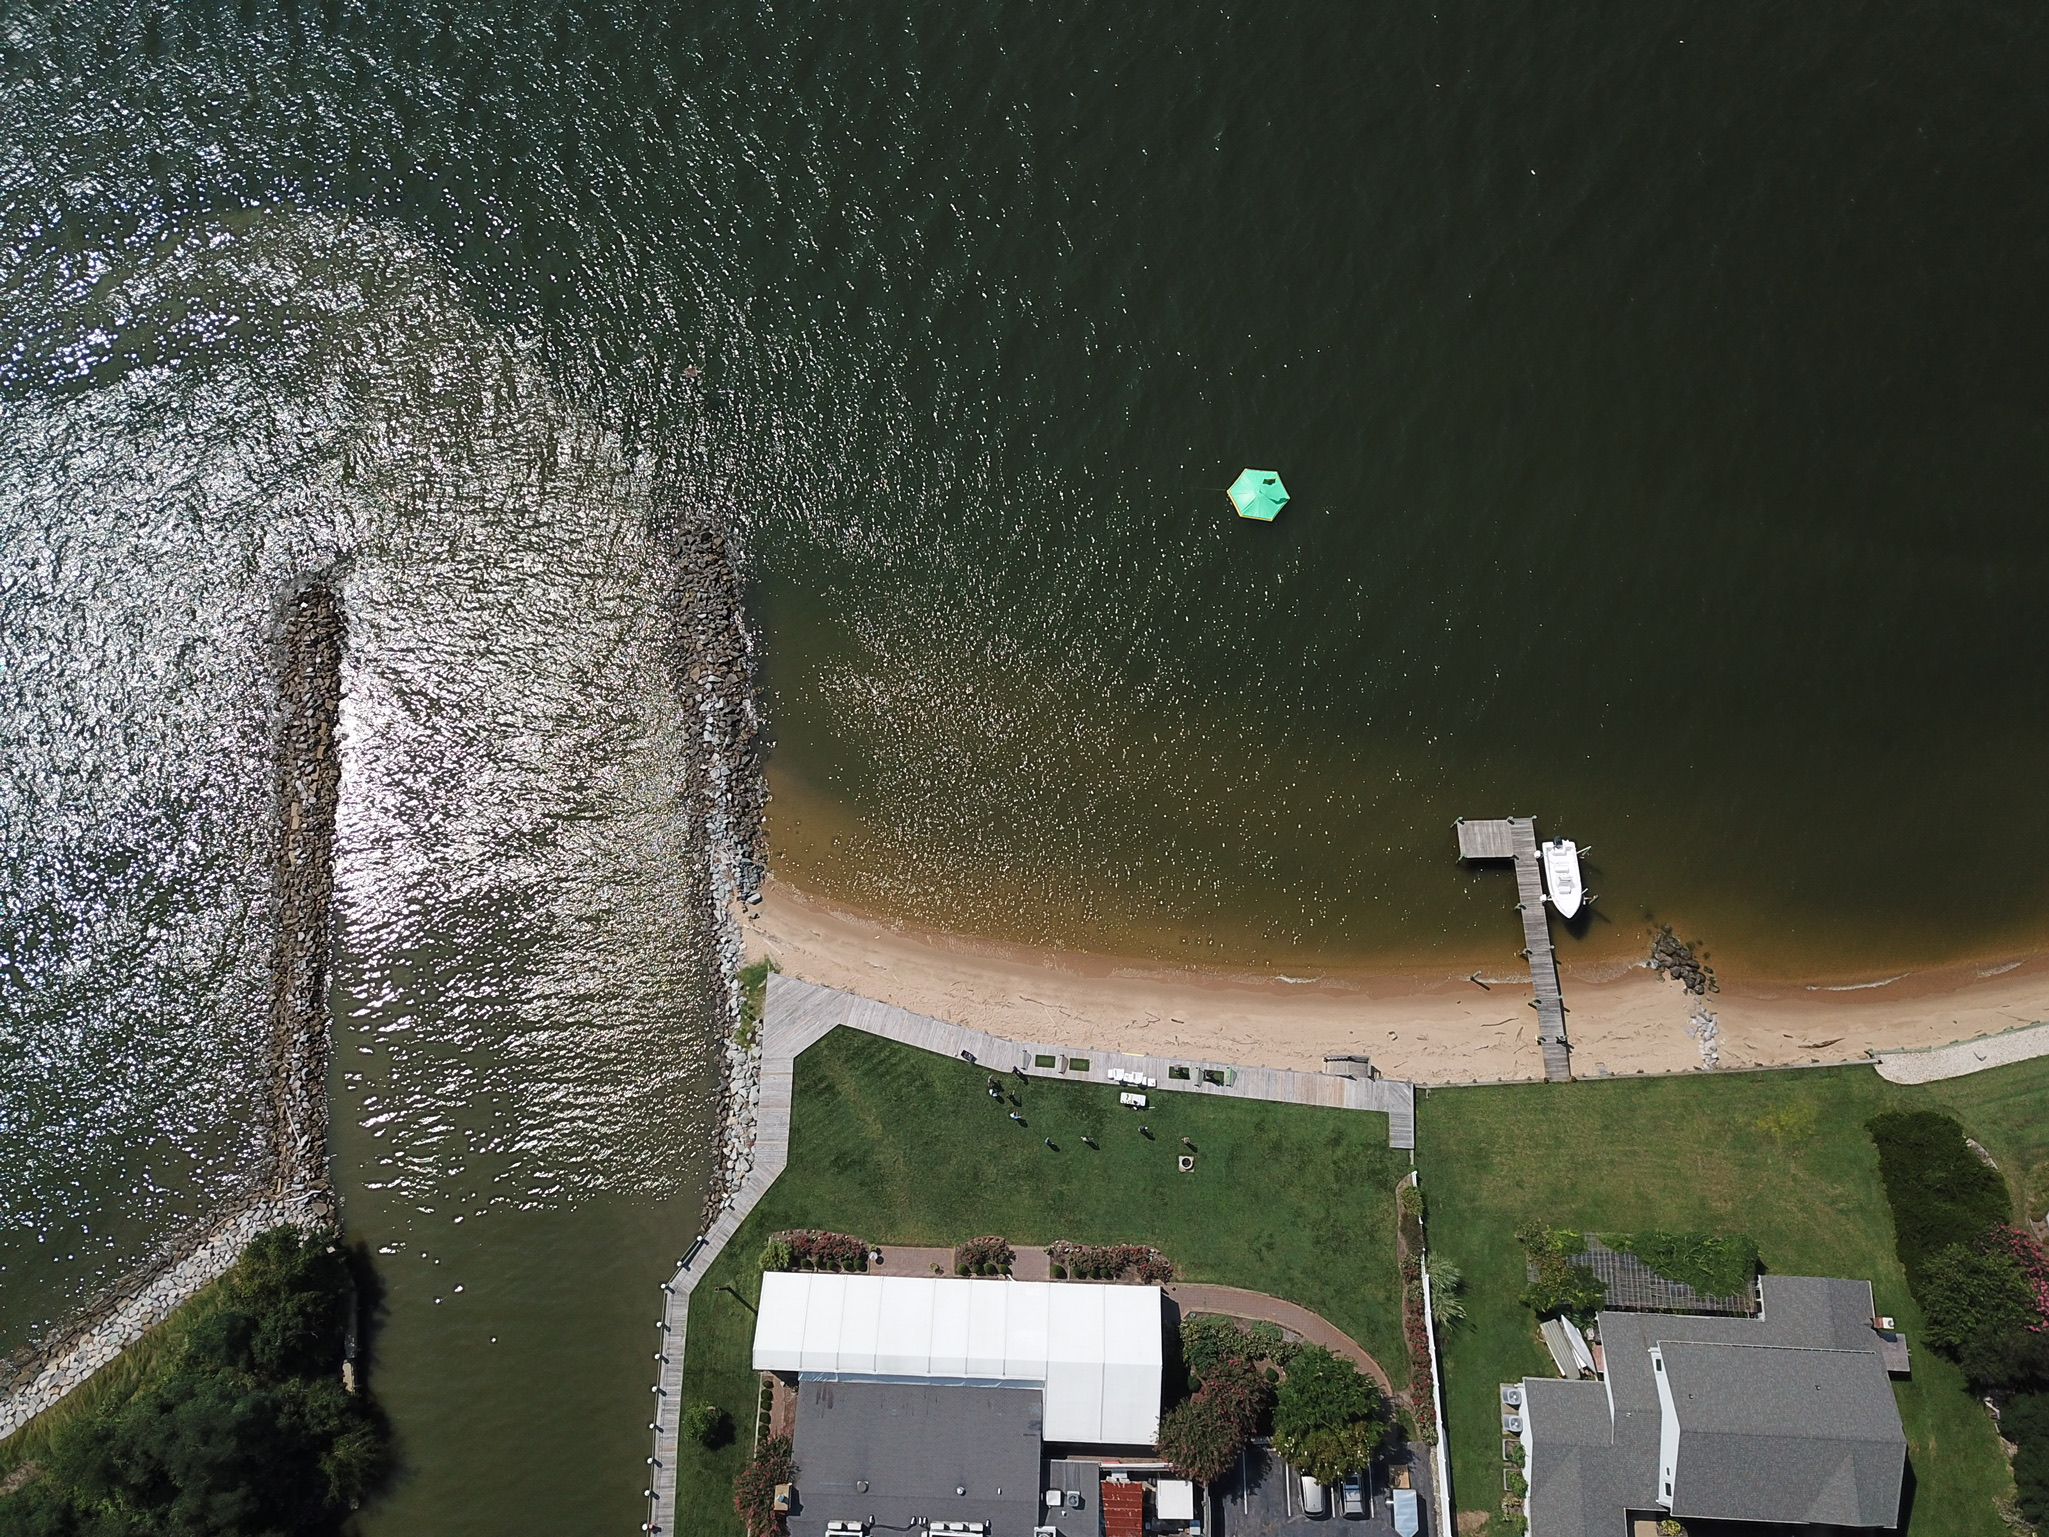 Hit biodegradable golf balls at a technology packed floating target at Silver Swan Bayside! Located in Stevensville, Maryland, in Queen Anne's County. Our waterfront driving ranges are great for corporate events, weddings, happy hours, and celebrations.